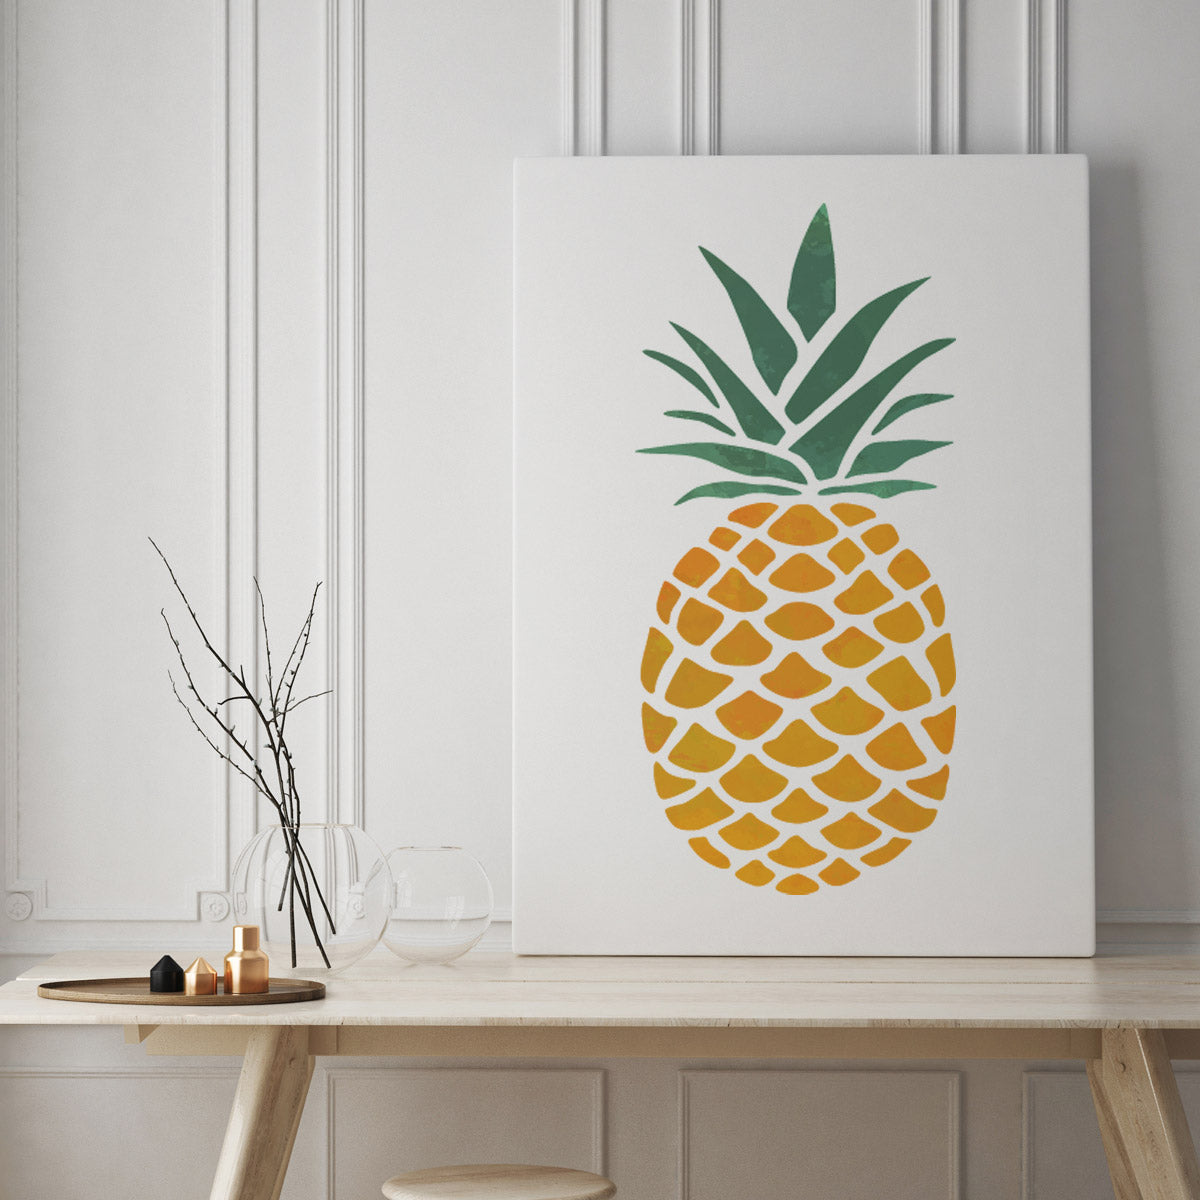 CraftStar Large Pineapple Stencil on canvas